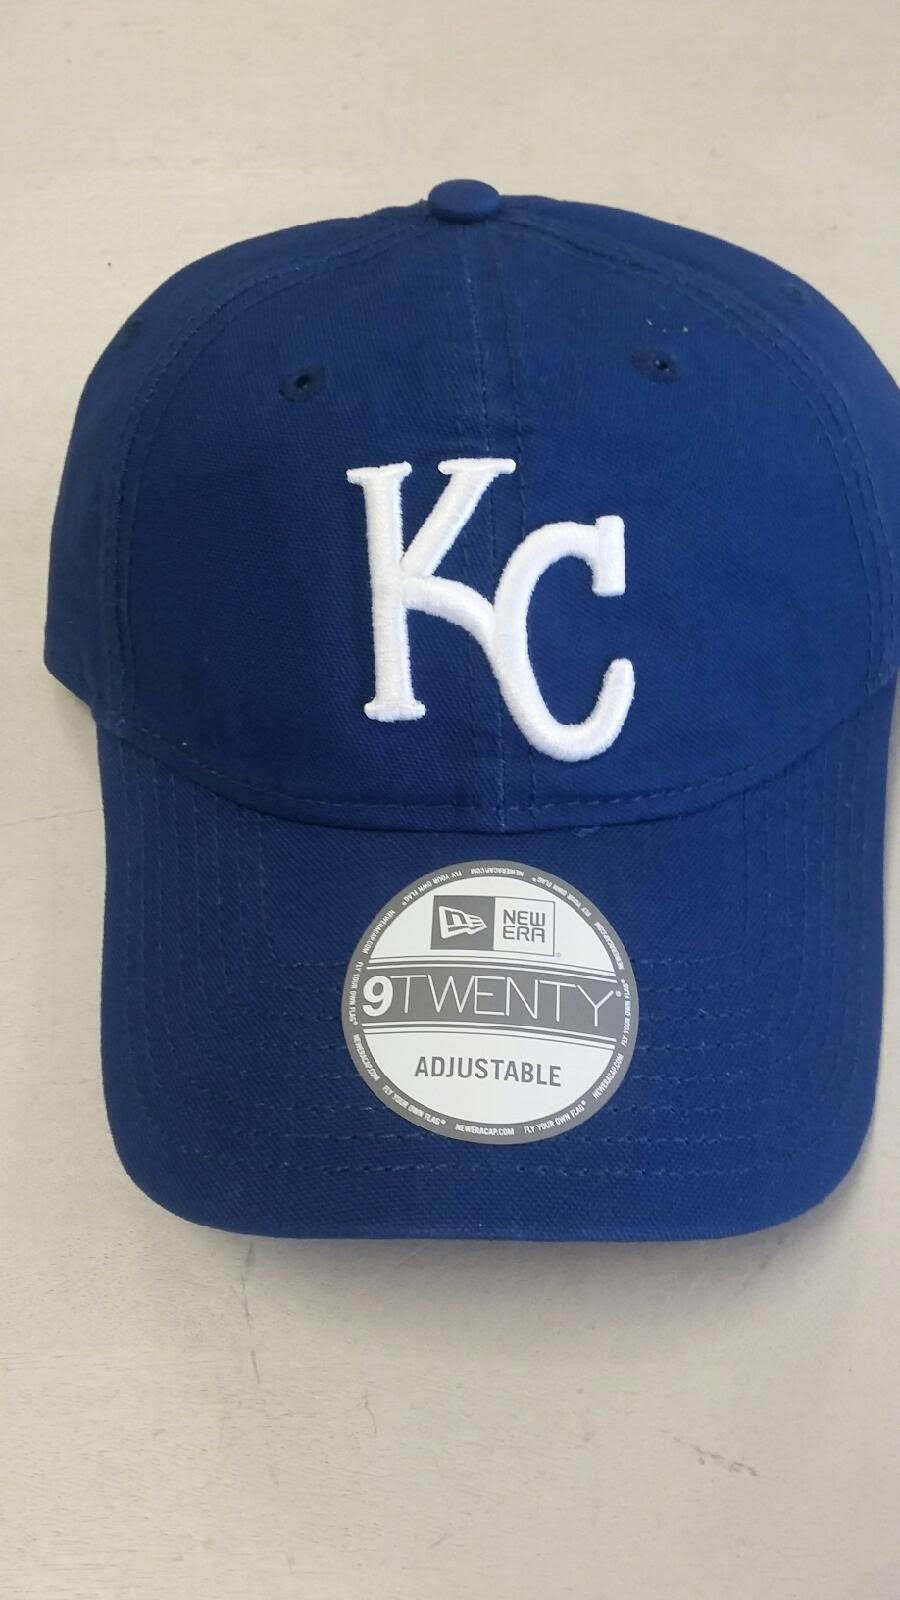 c9be41d59 Kansas City Royals Core Shore Adjustable 9TWENTY Hat by New Era | MO Sports  Authentics, Apparel & Gifts